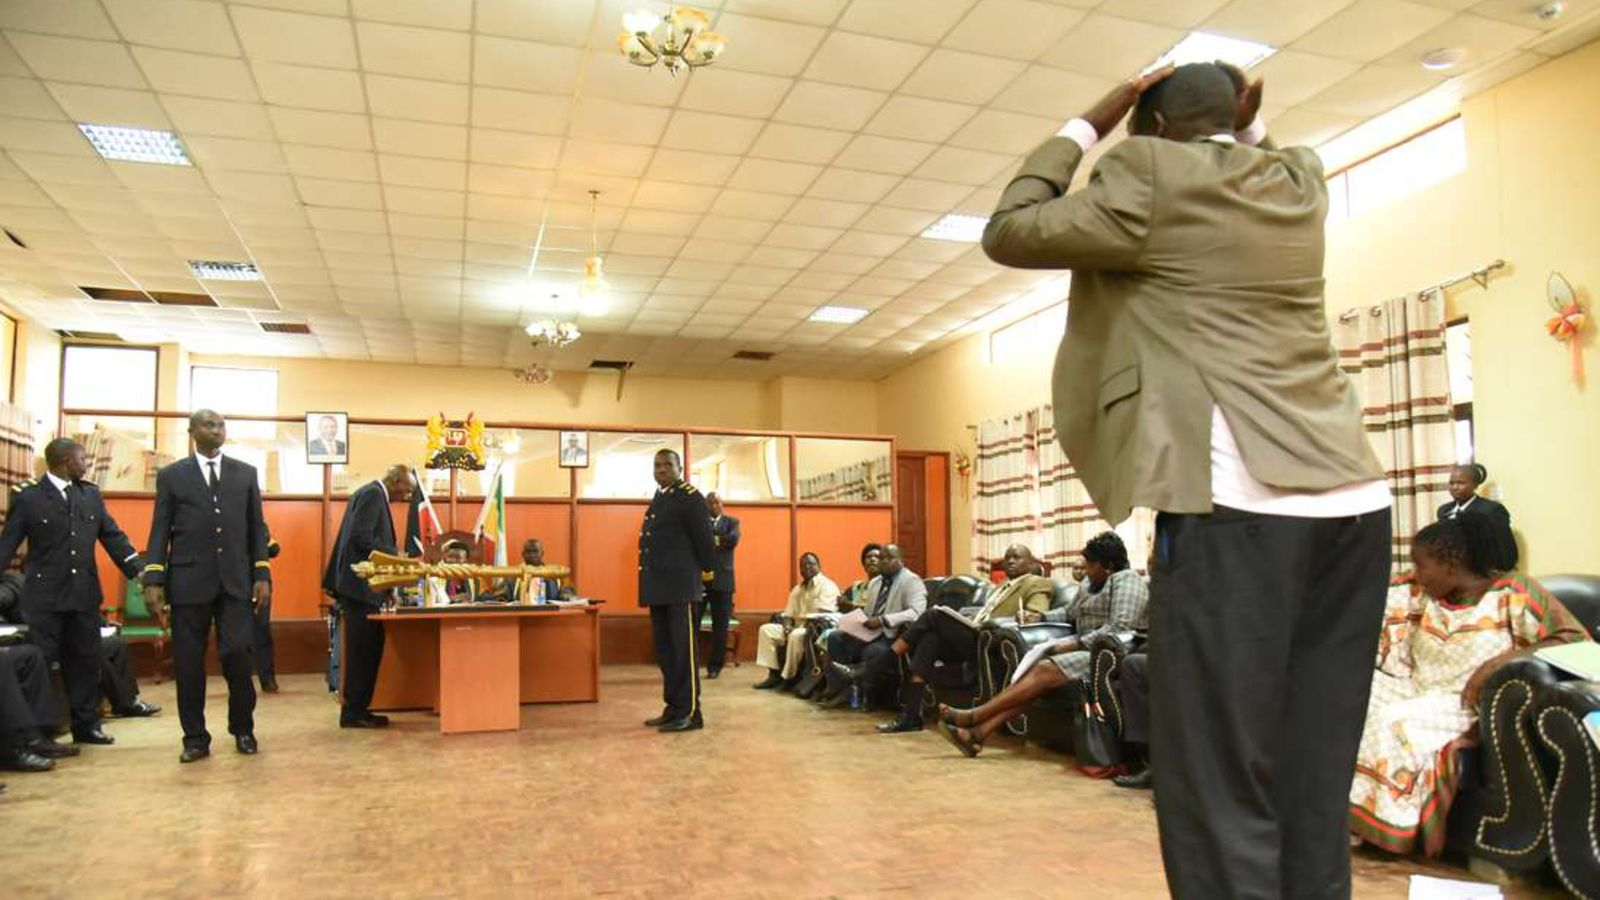 Baringo county rejects BBI in chaotic Sitting